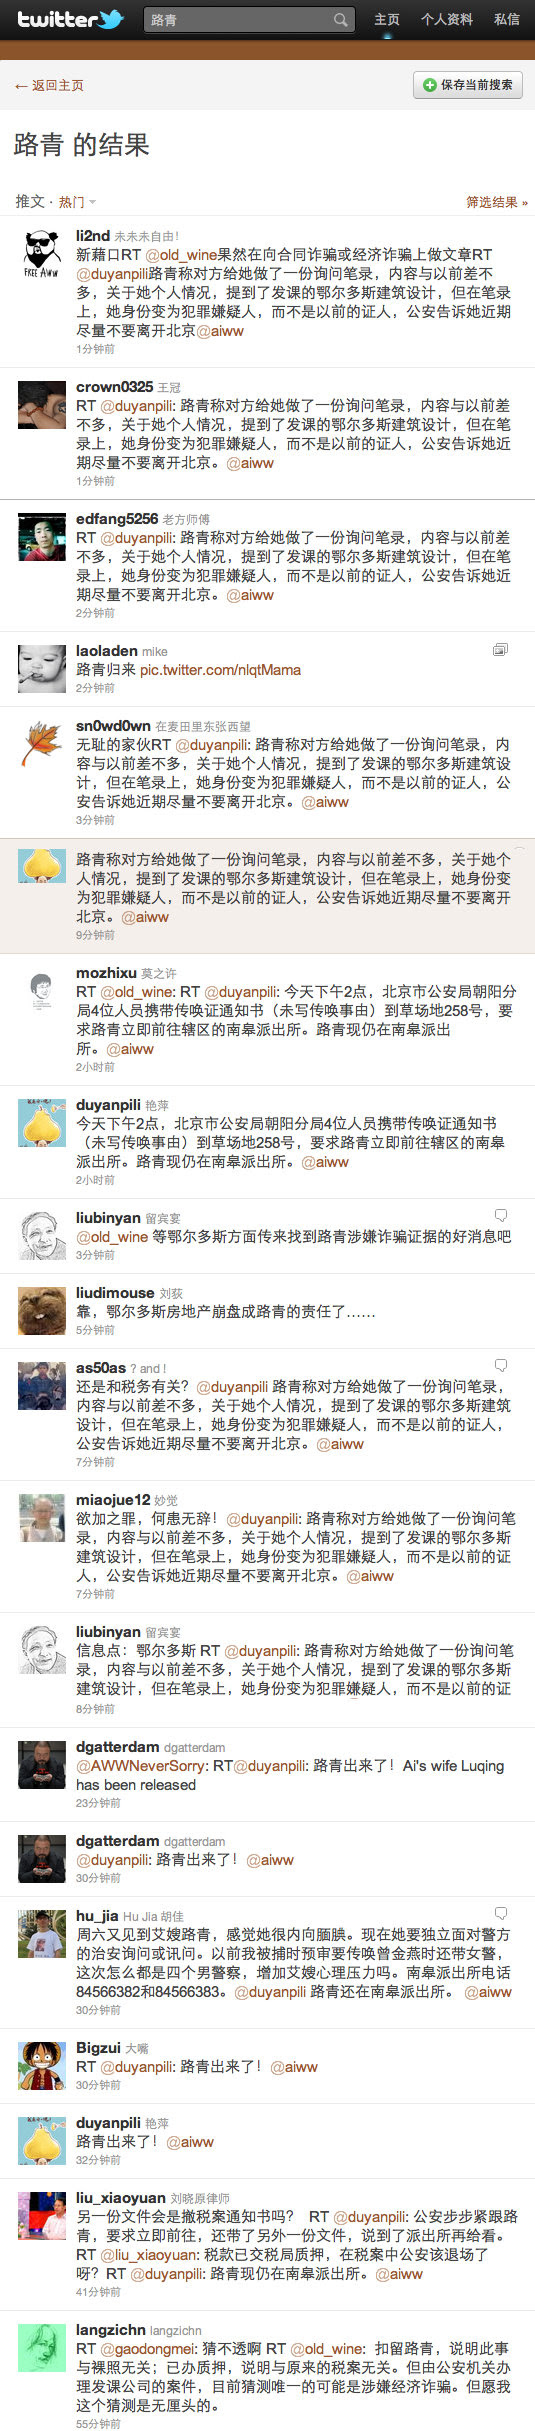 Twitter : Search - luqing is out